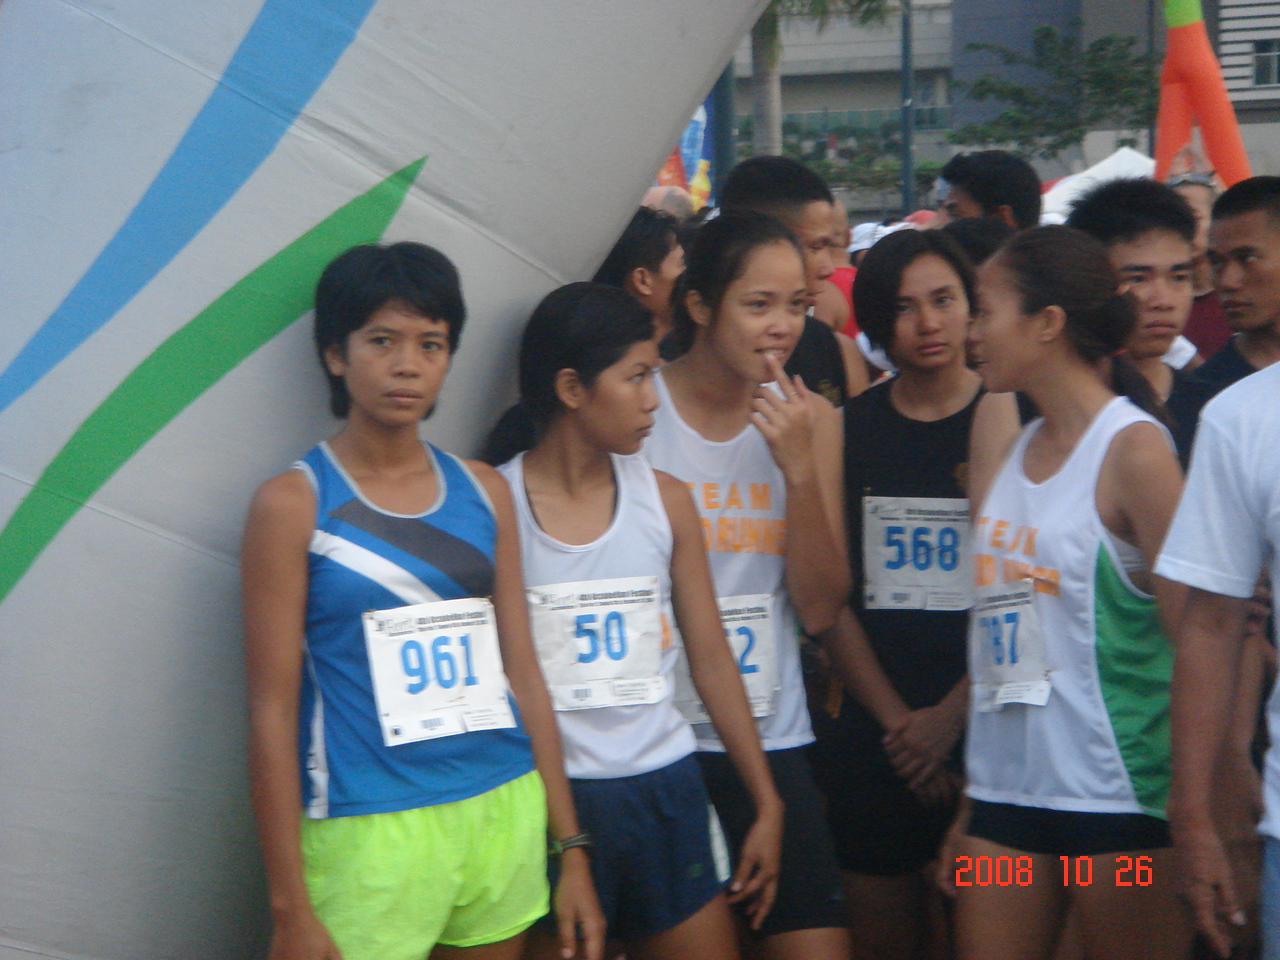 Women's Team Bald Runner at the Starting Area